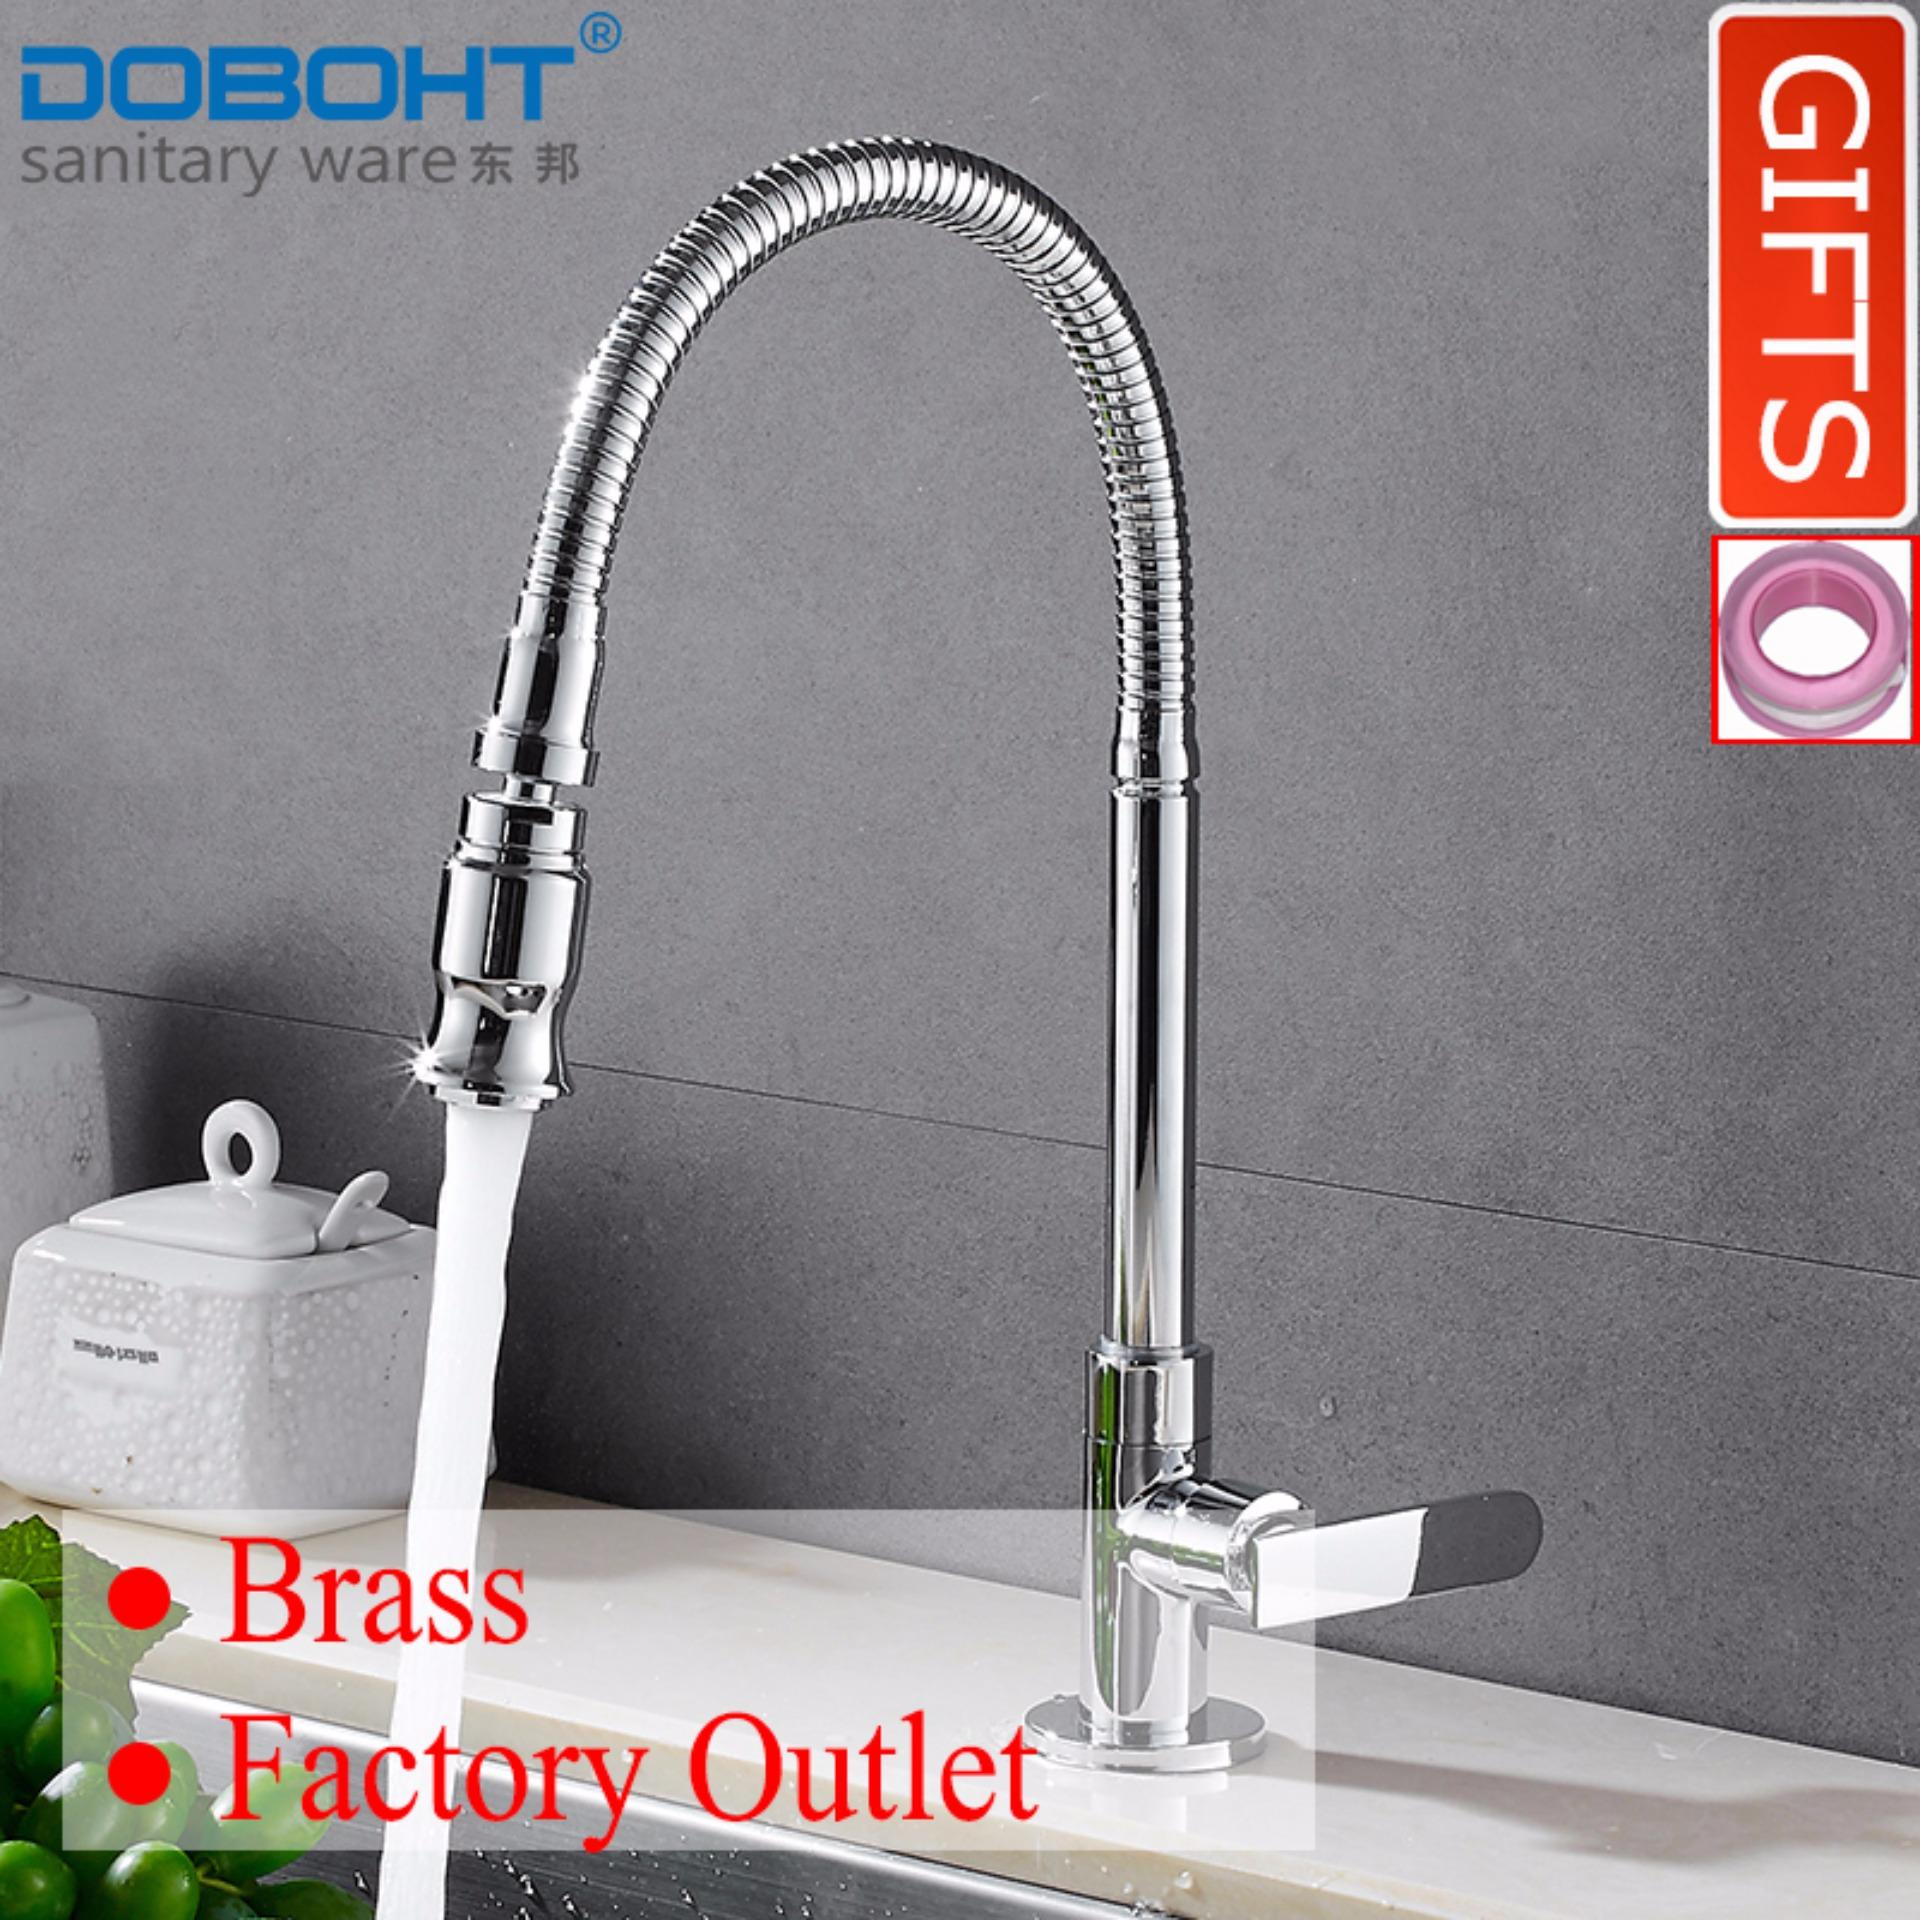 Top Rated Doboht Brass Bathroom Sink Basin Kitchen Single Cold Tap Faucet Chrome Intl